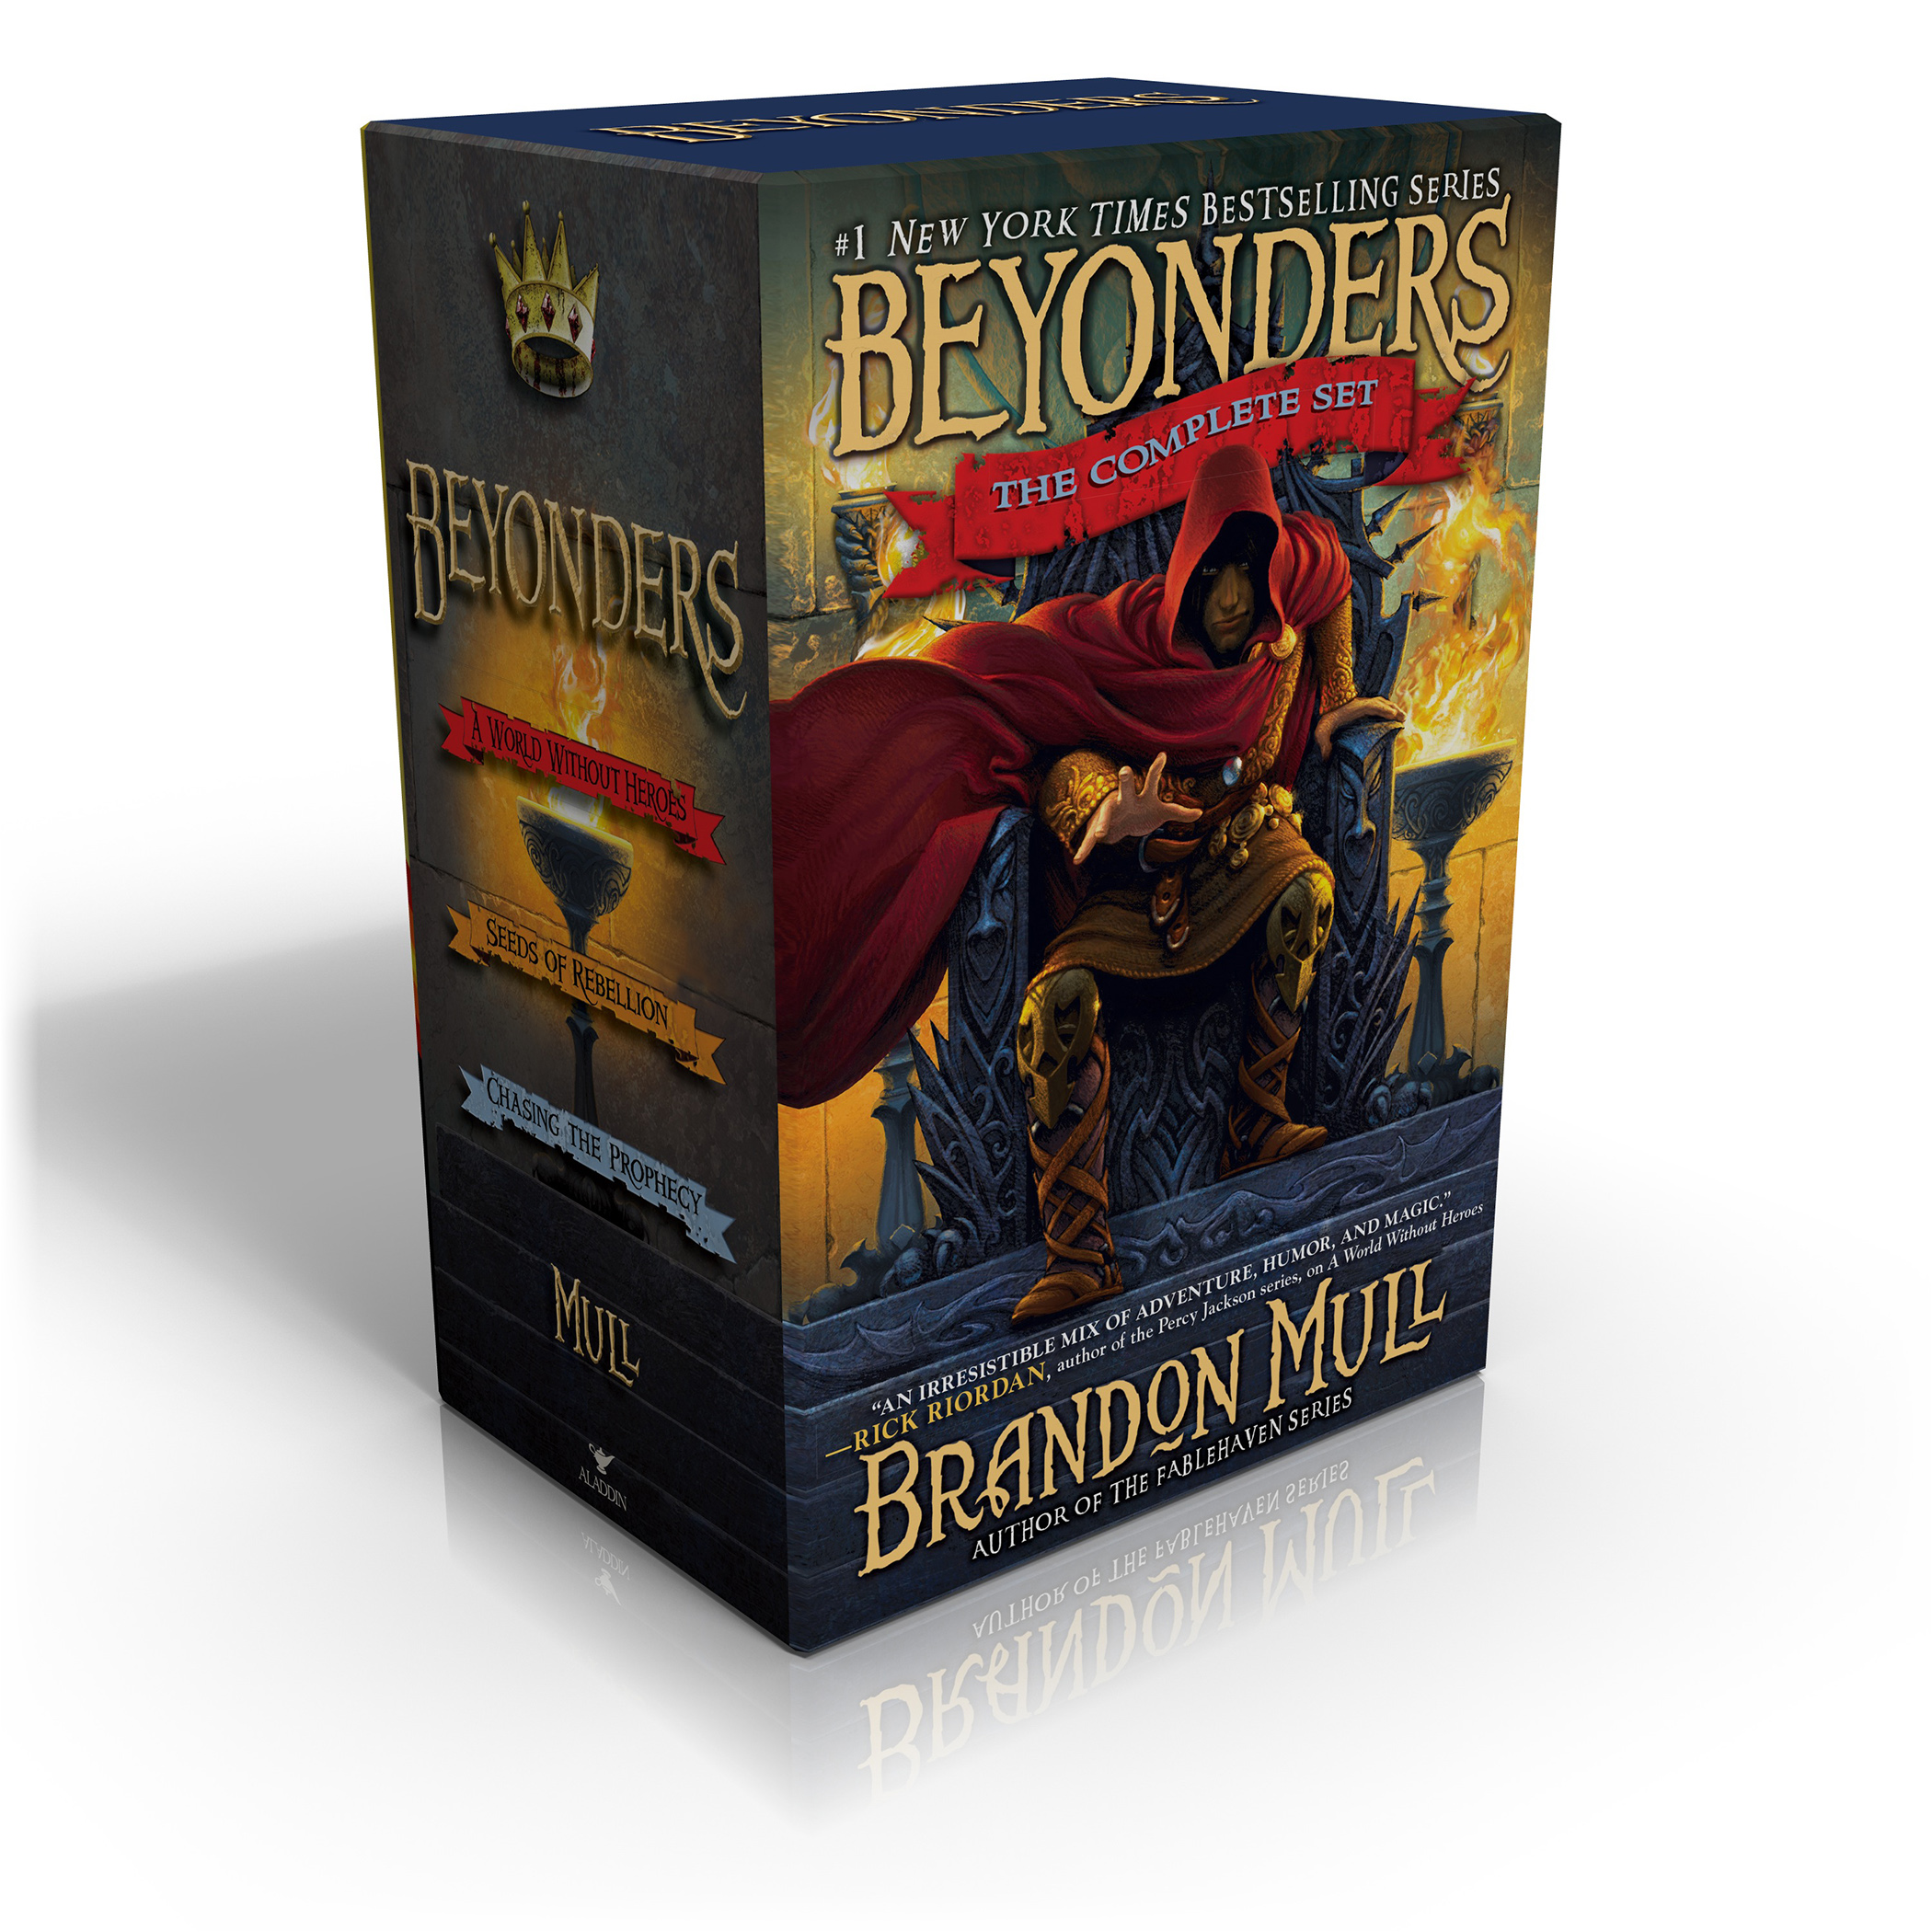 Beyonders-the-complete-set-9781442494428_hr